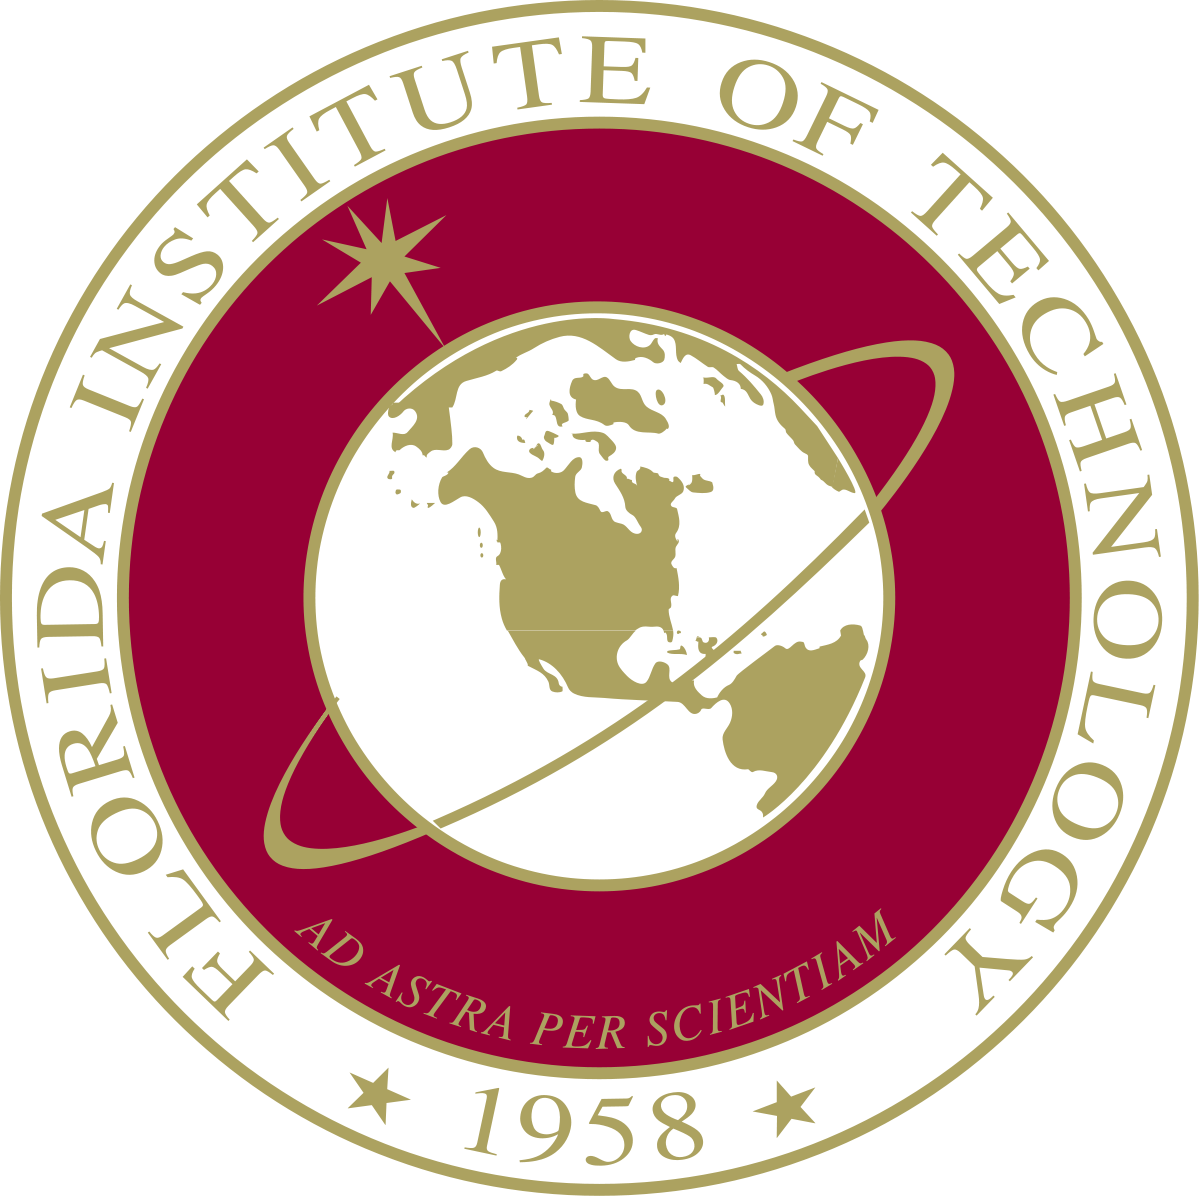 Florida institute of wikipedia. Psychology clipart science technology society